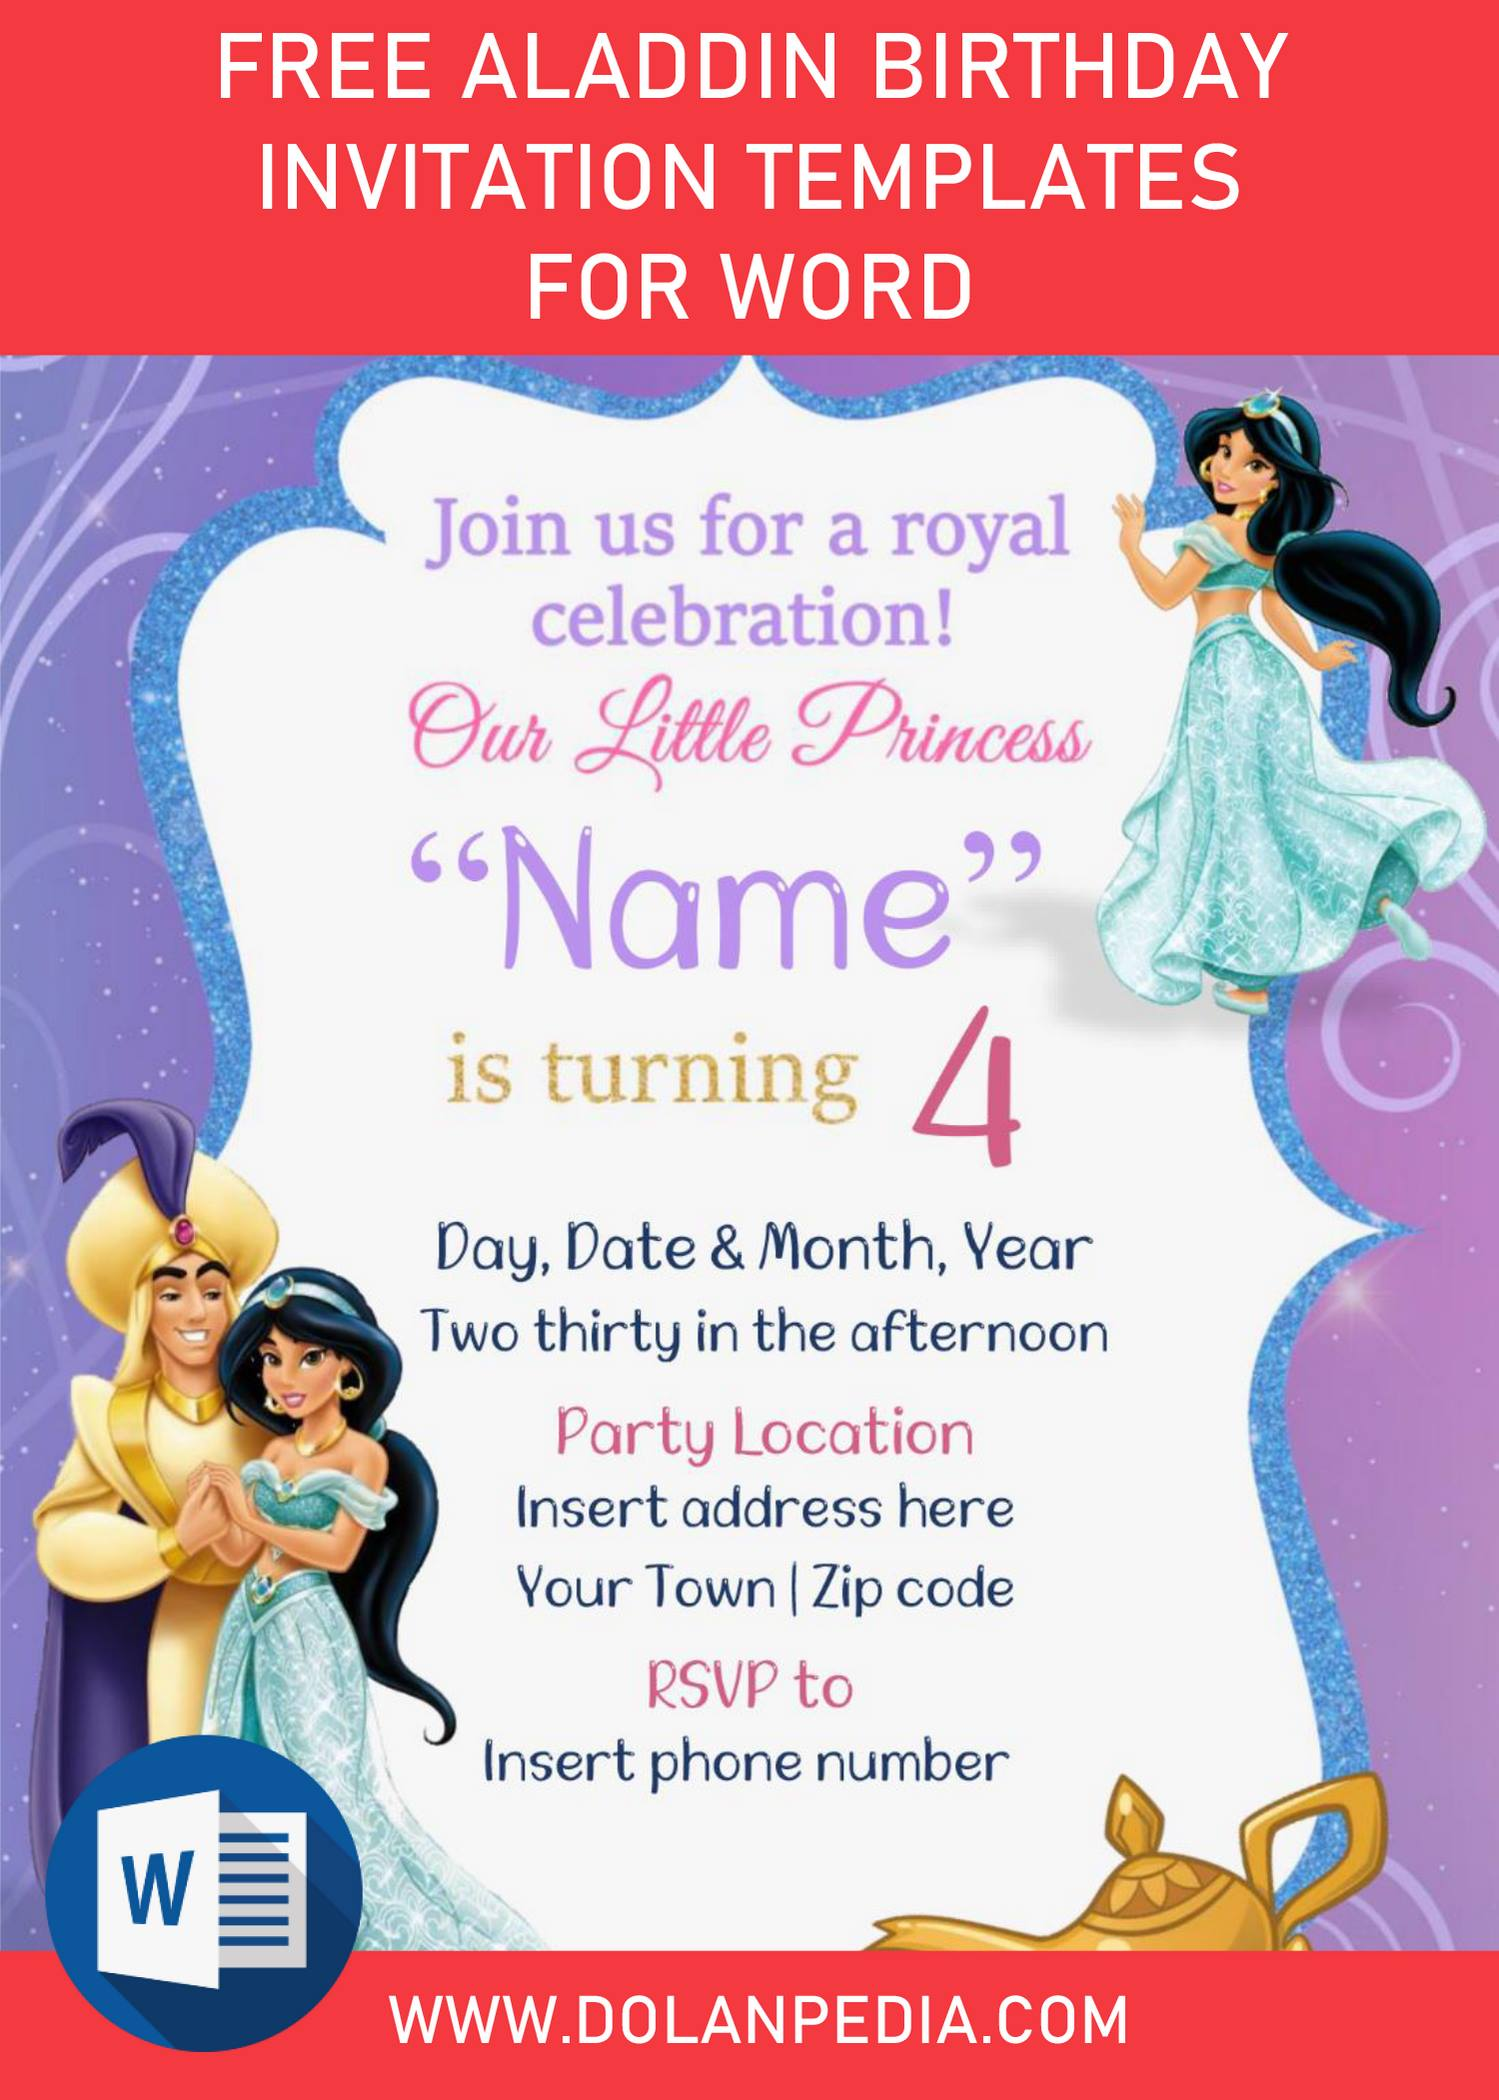 free aladdin birthday invitation